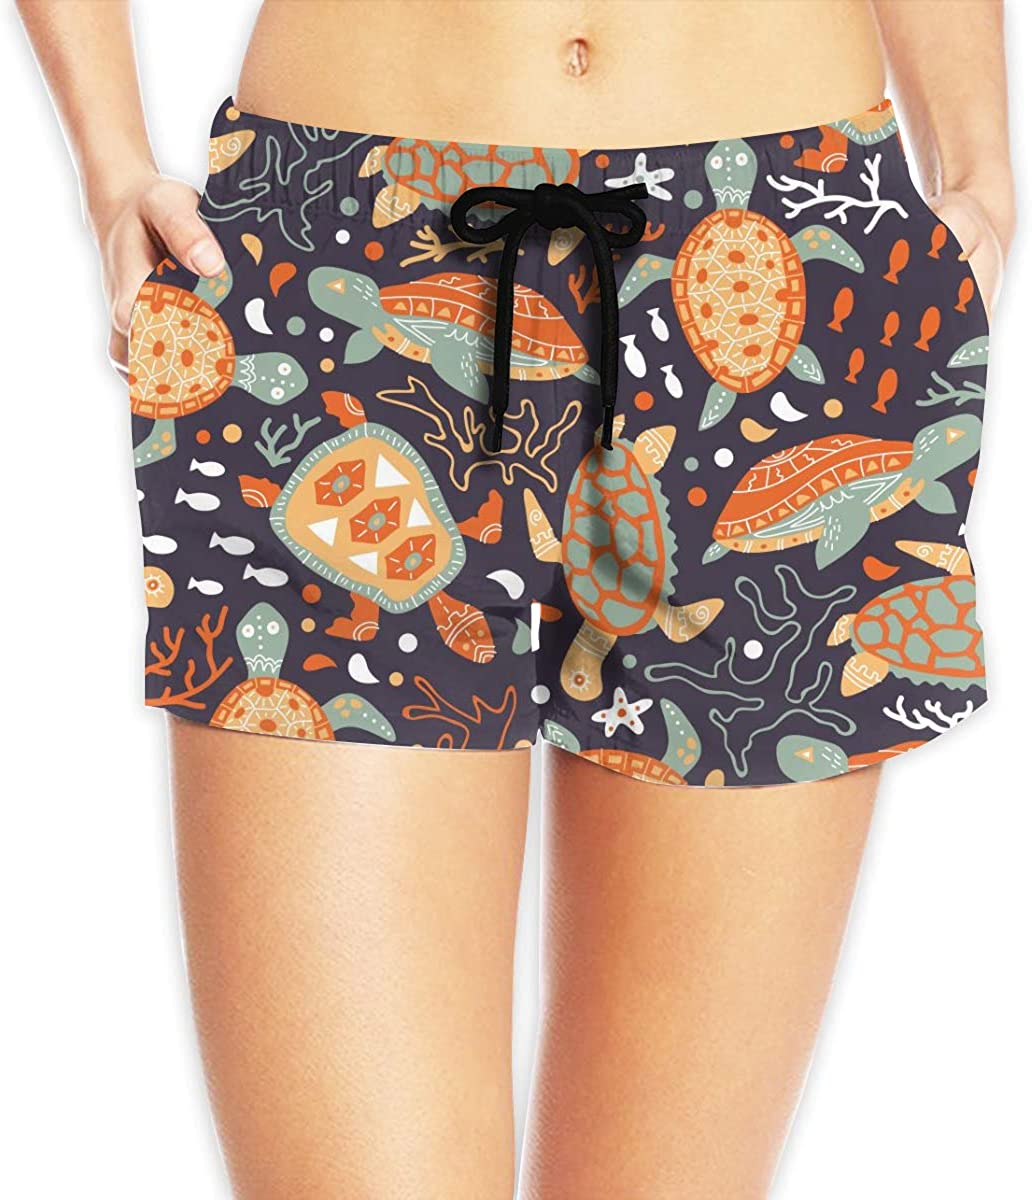 Turtles Sea Plants Corals Fishes Women's Beach Shorts Board Shorts with Pocket Swimming Trunks